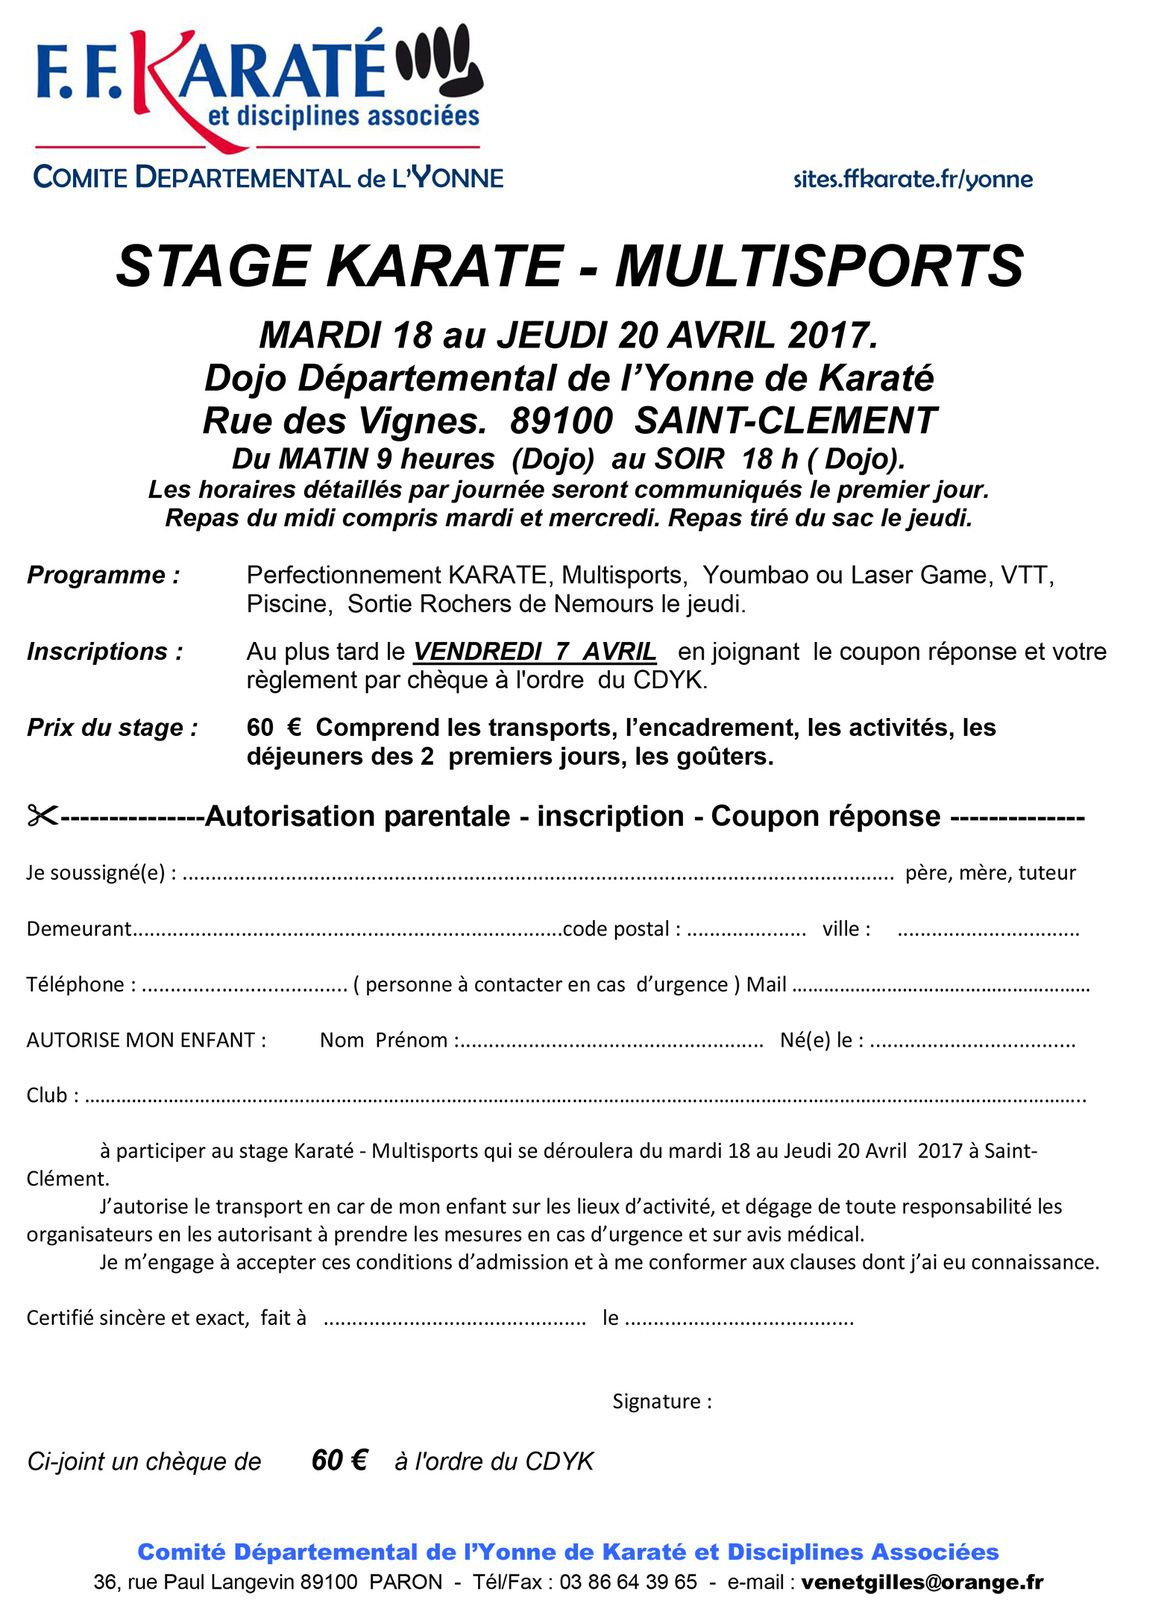 STAGE D'AVRIL